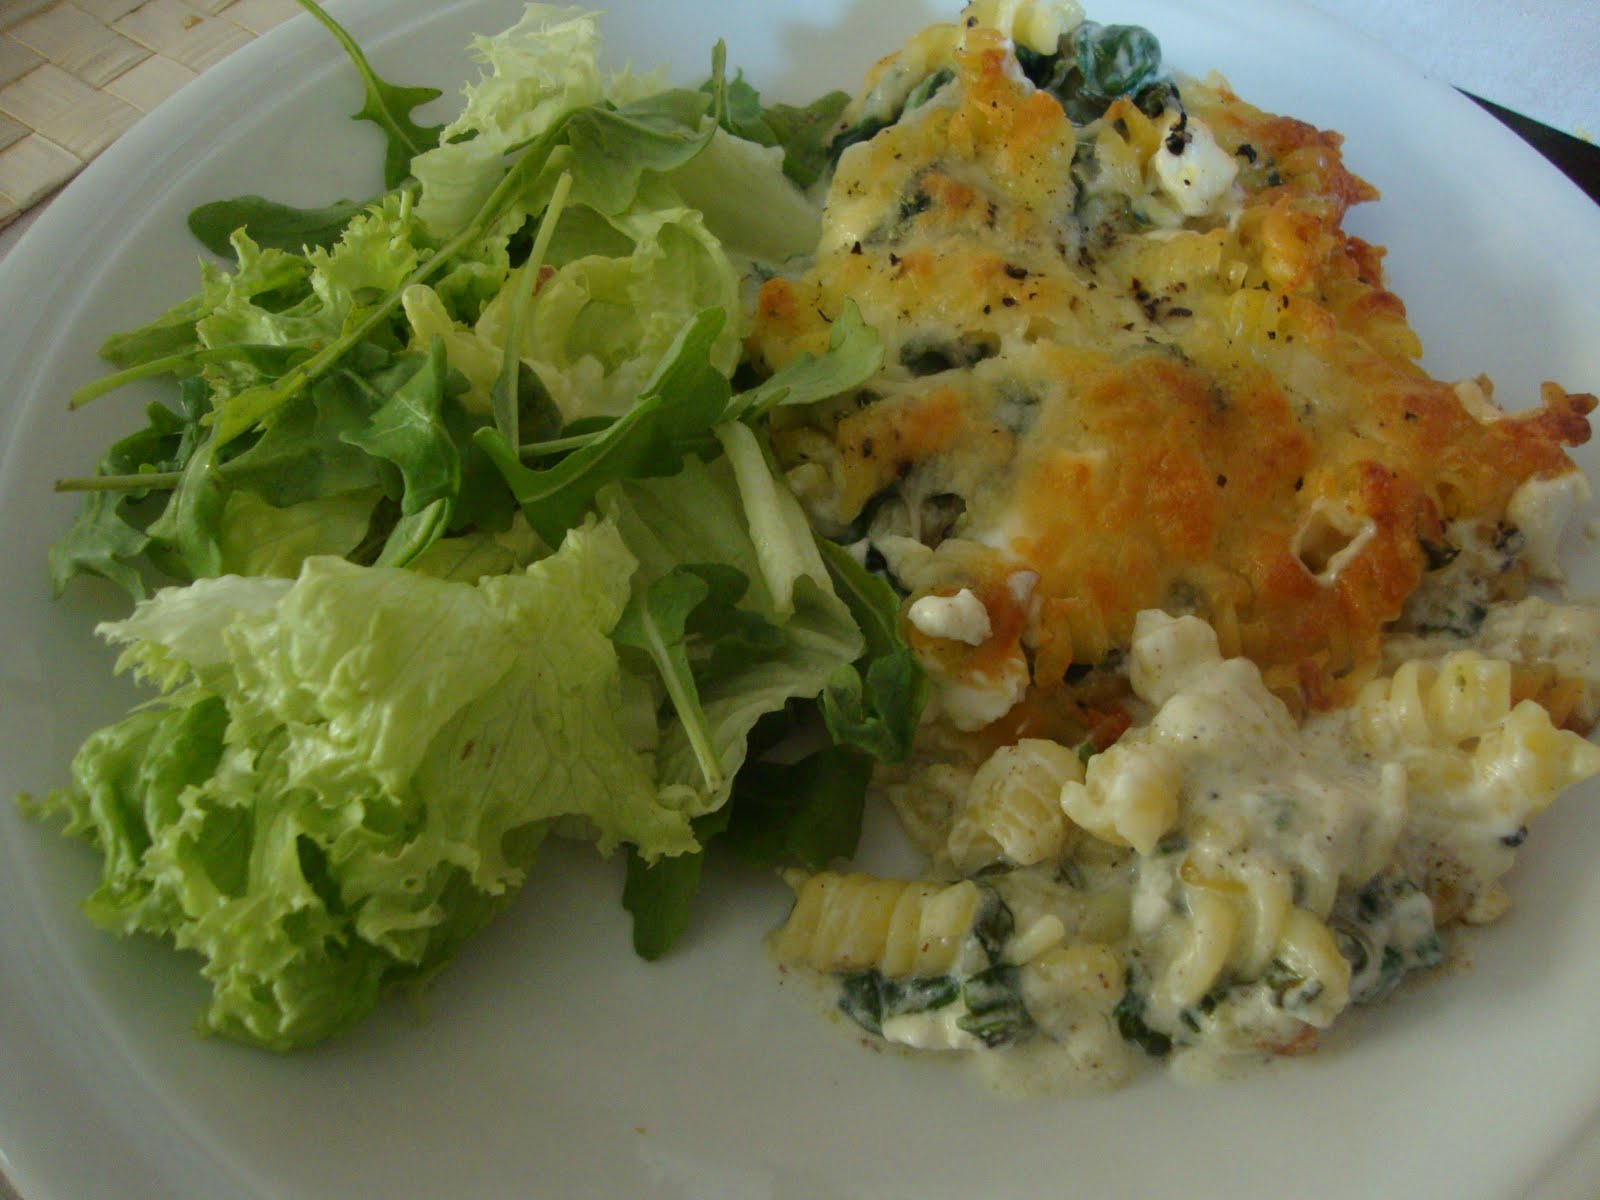 Eat Out Eat In: Spinach and Feta Pasta Bake